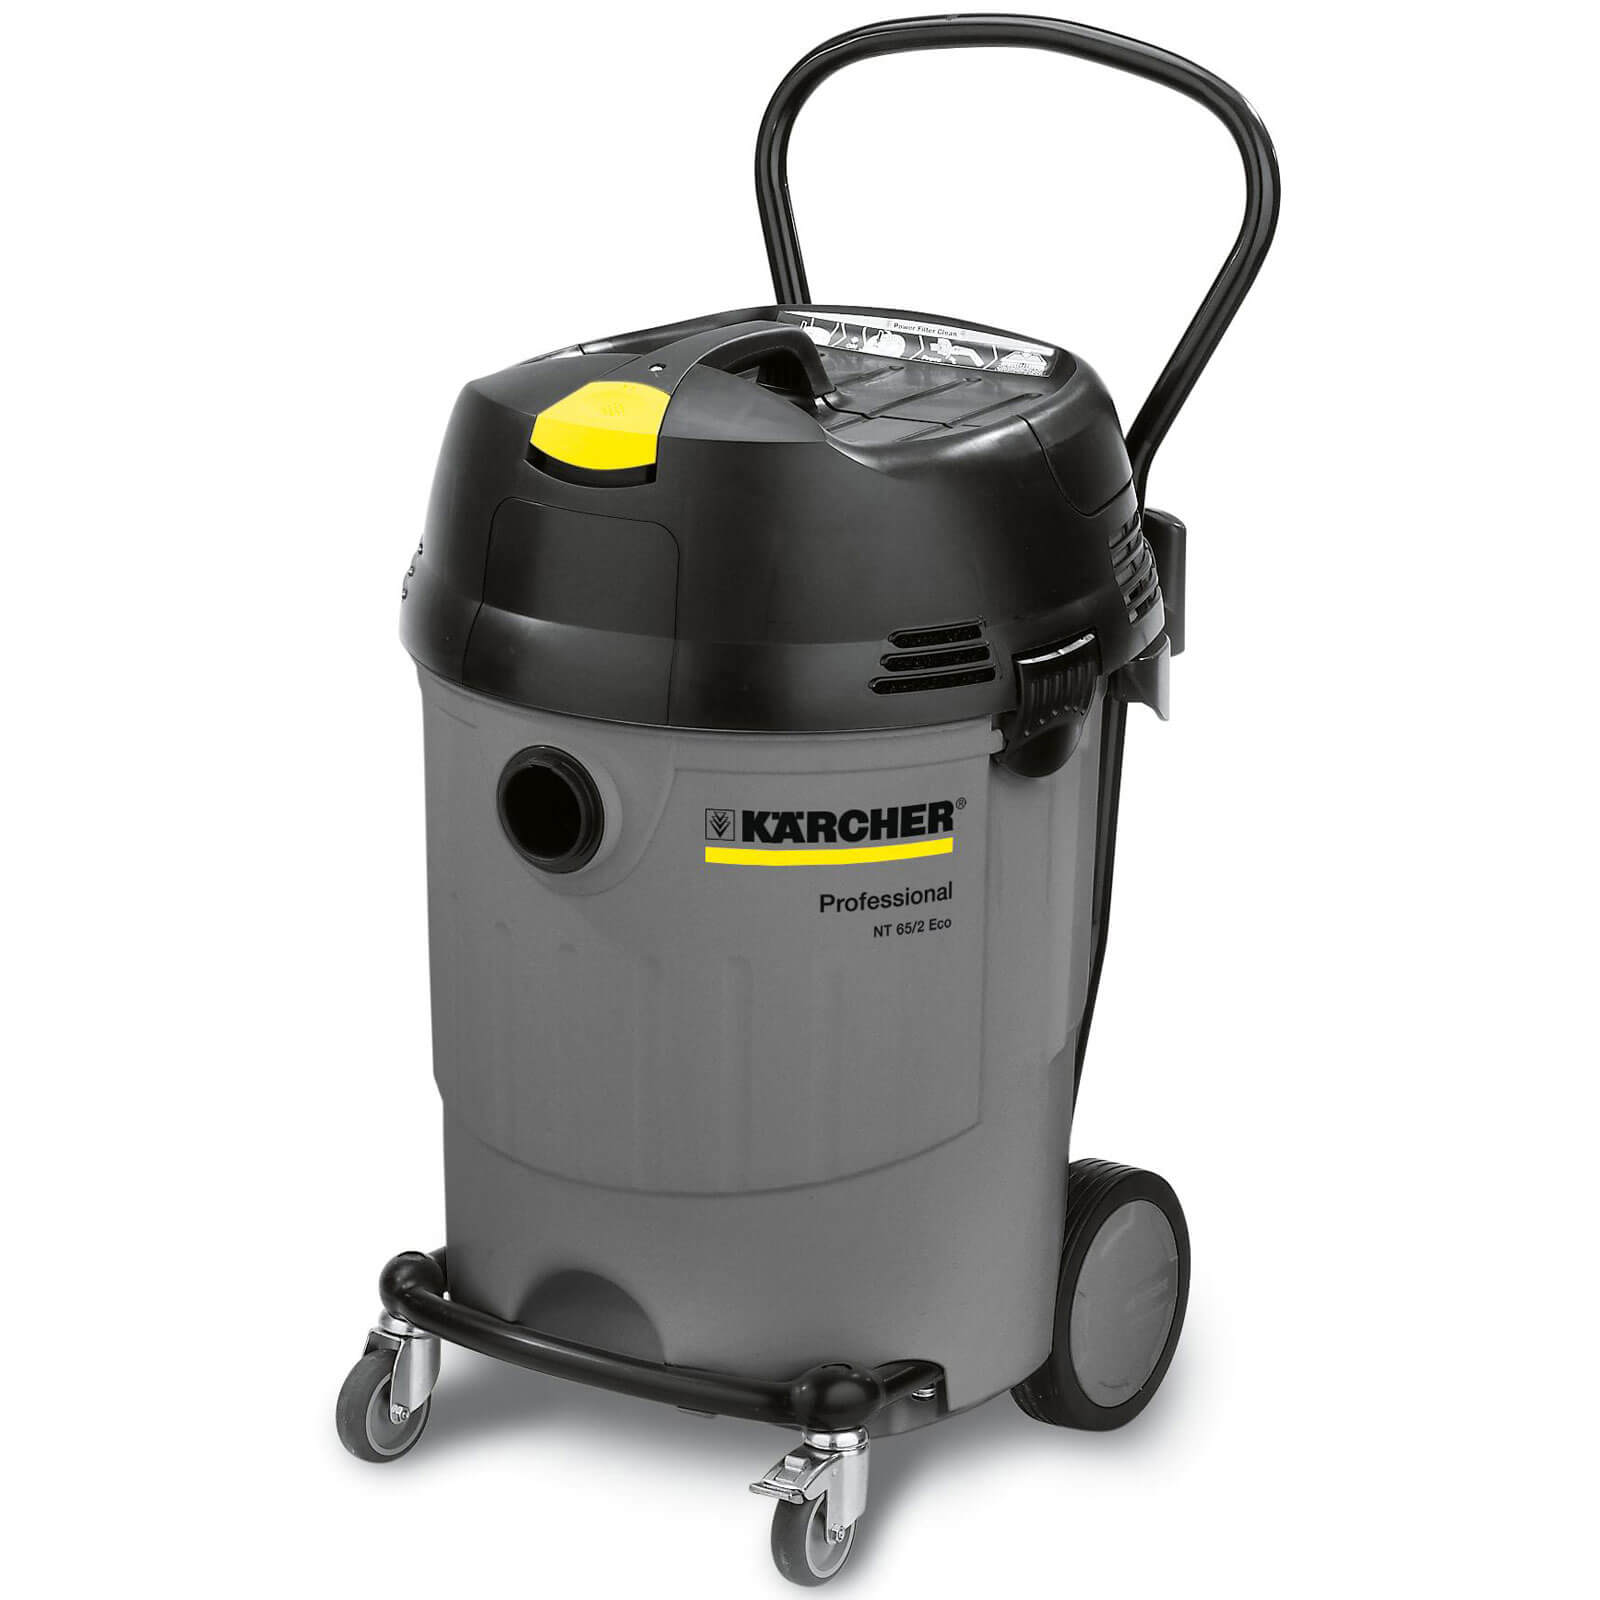 Karcher NT 652 ECO Professional Wet & Dry Vacuum Cleaner 110v